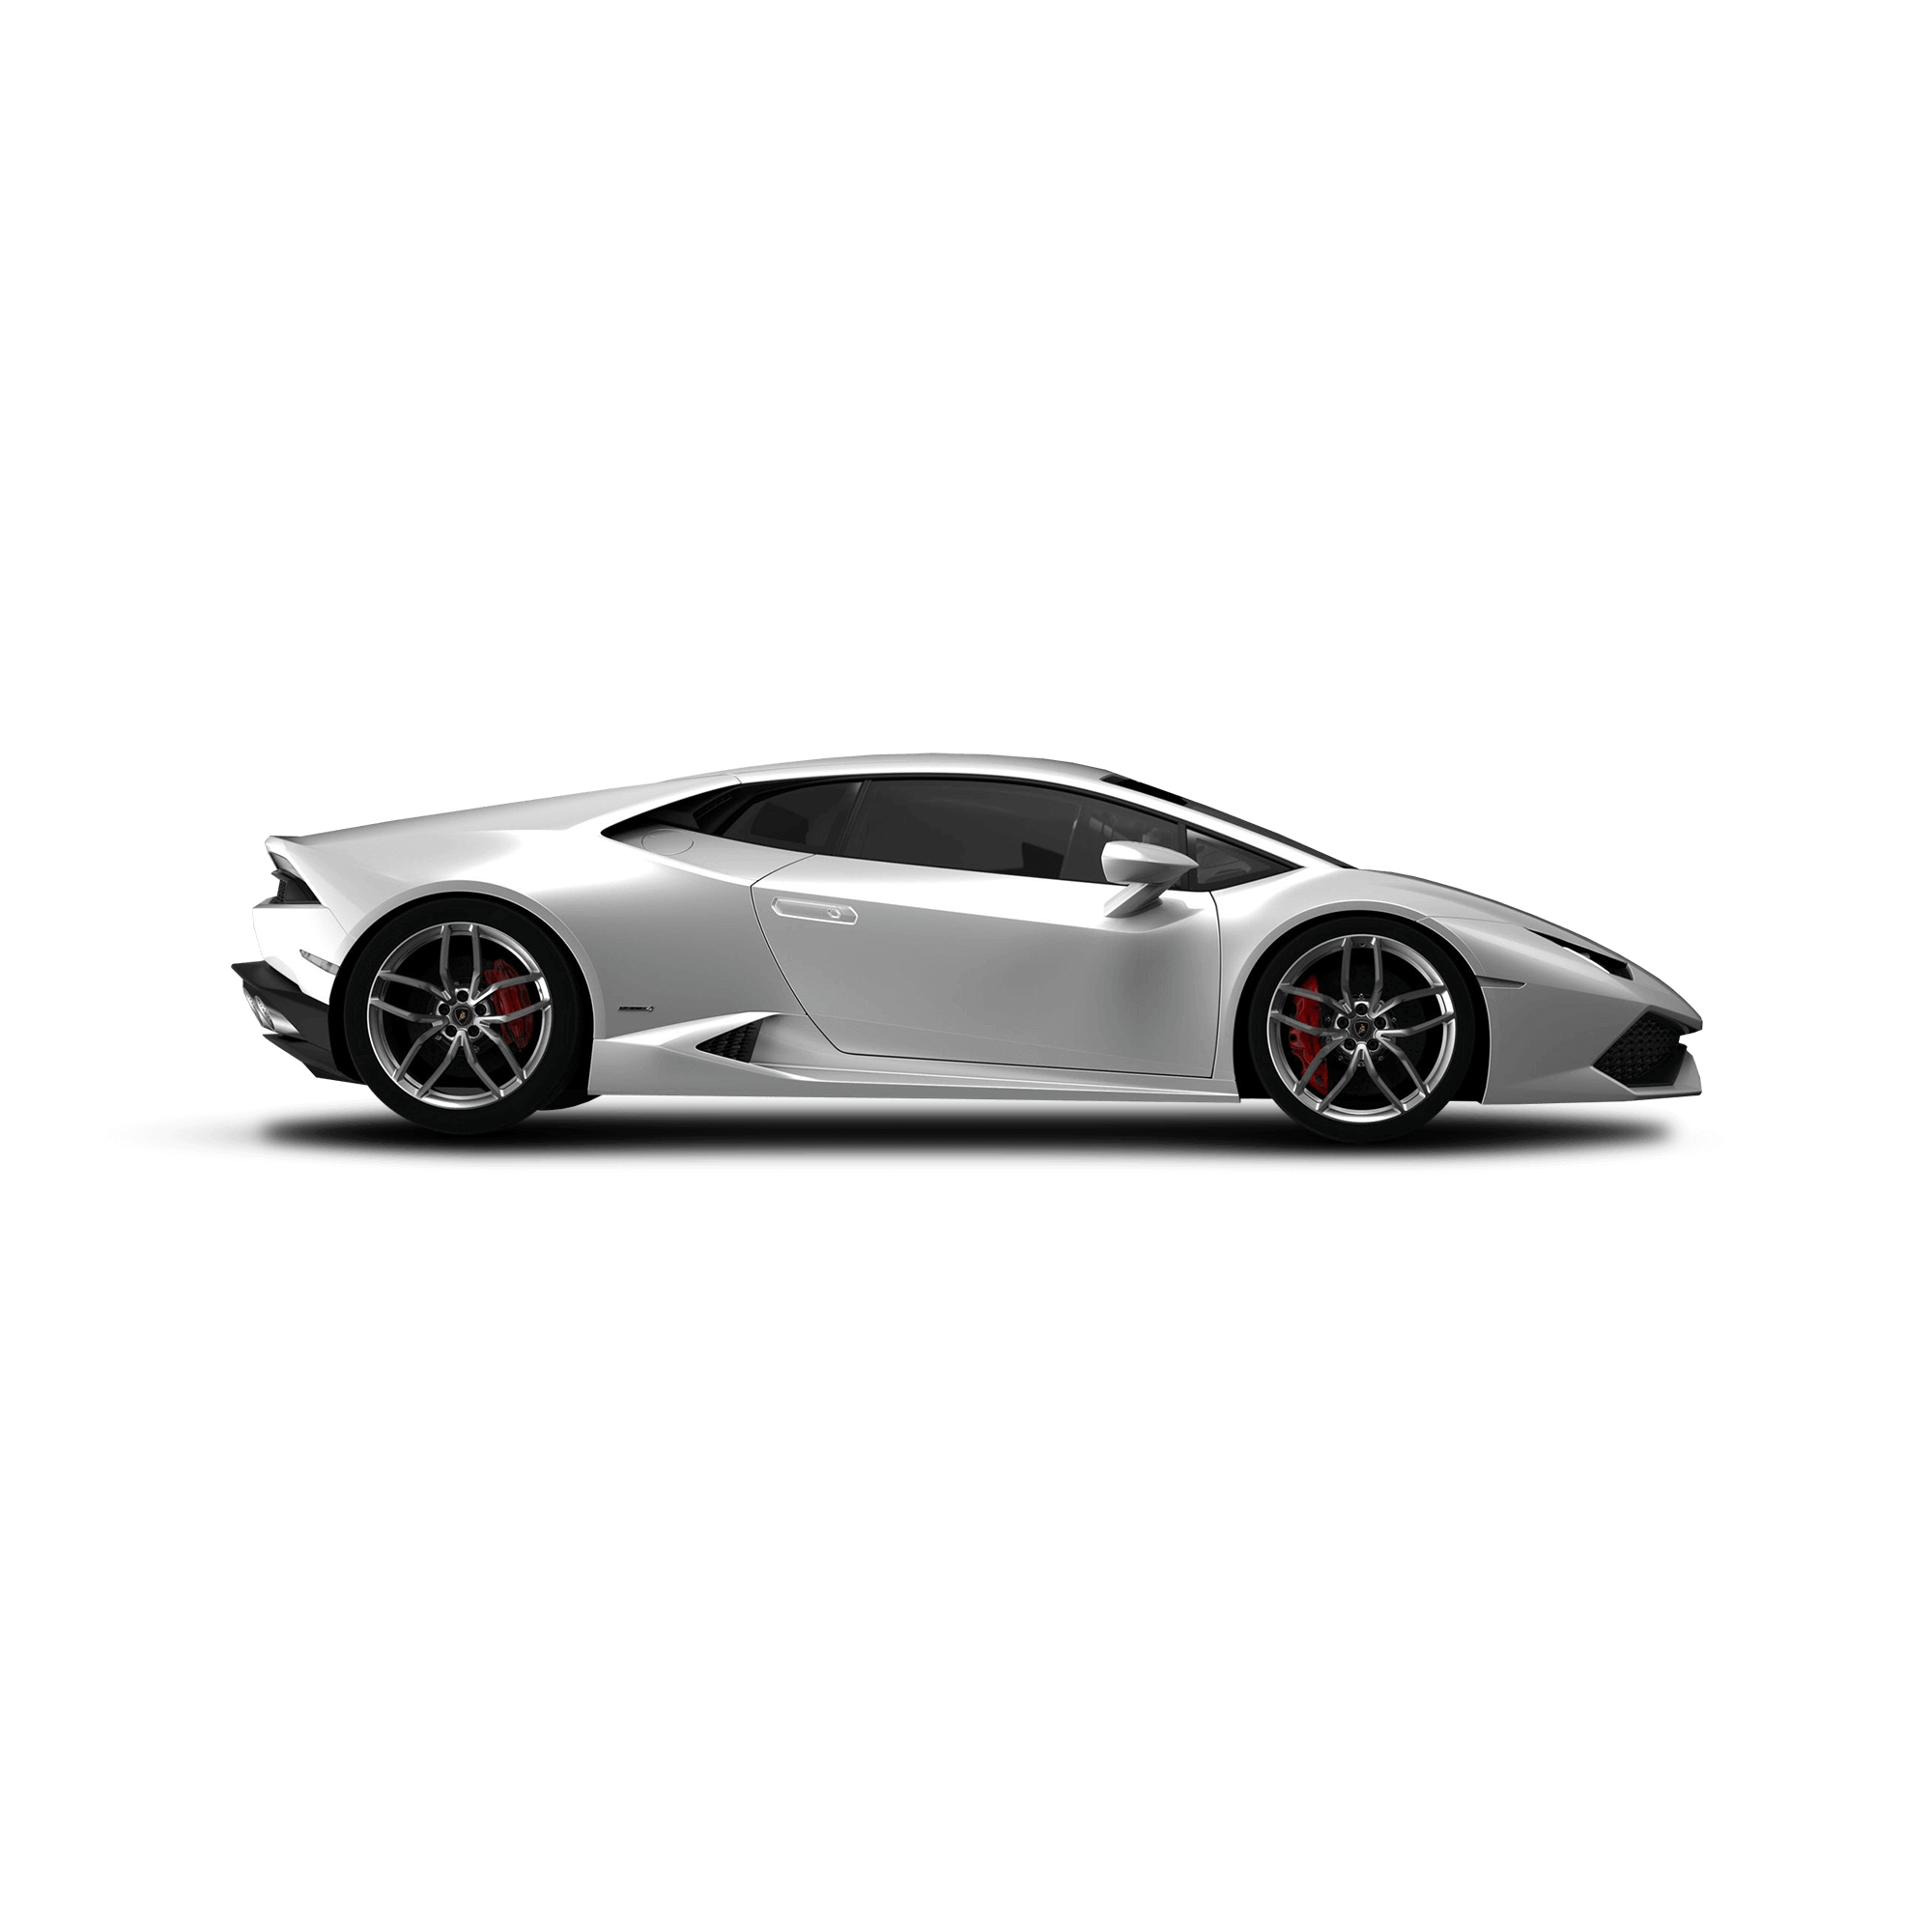 Lamborghini Huracán Features And Specs